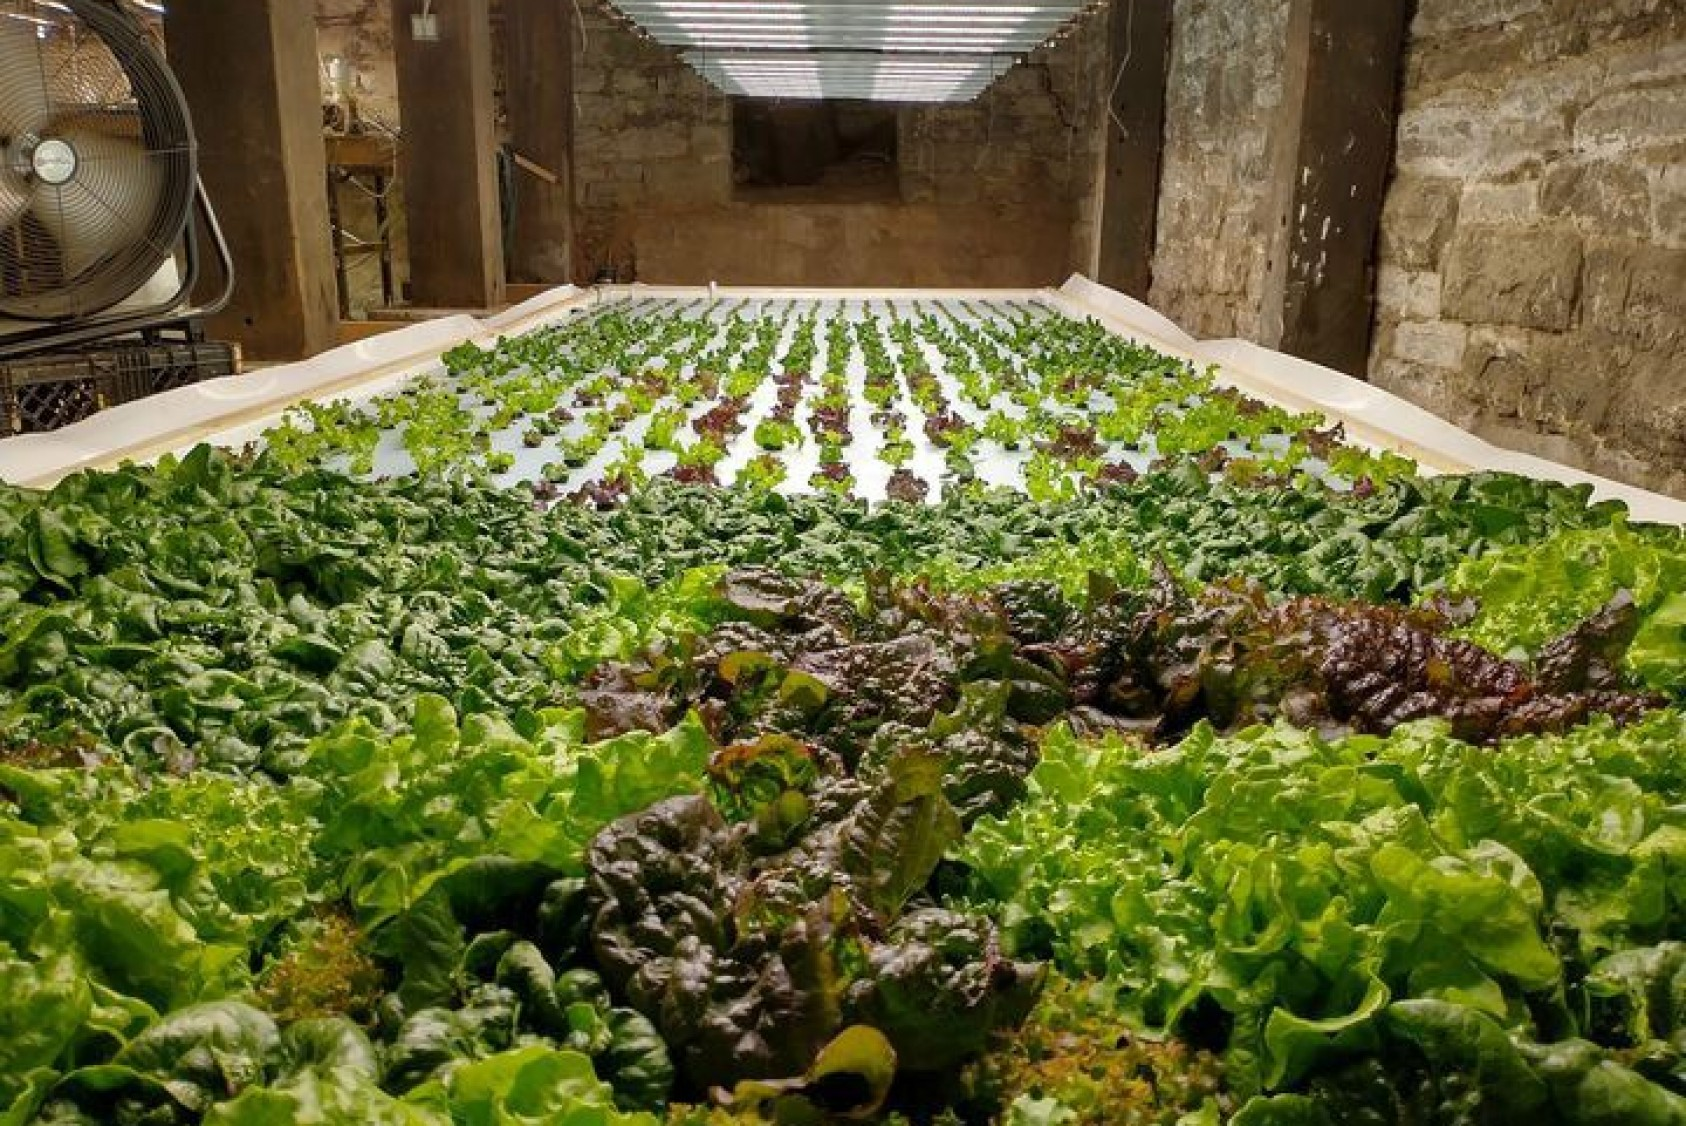 One of three growing beds in the hydroponic root cellar, which produces 150 pounds of produce per week